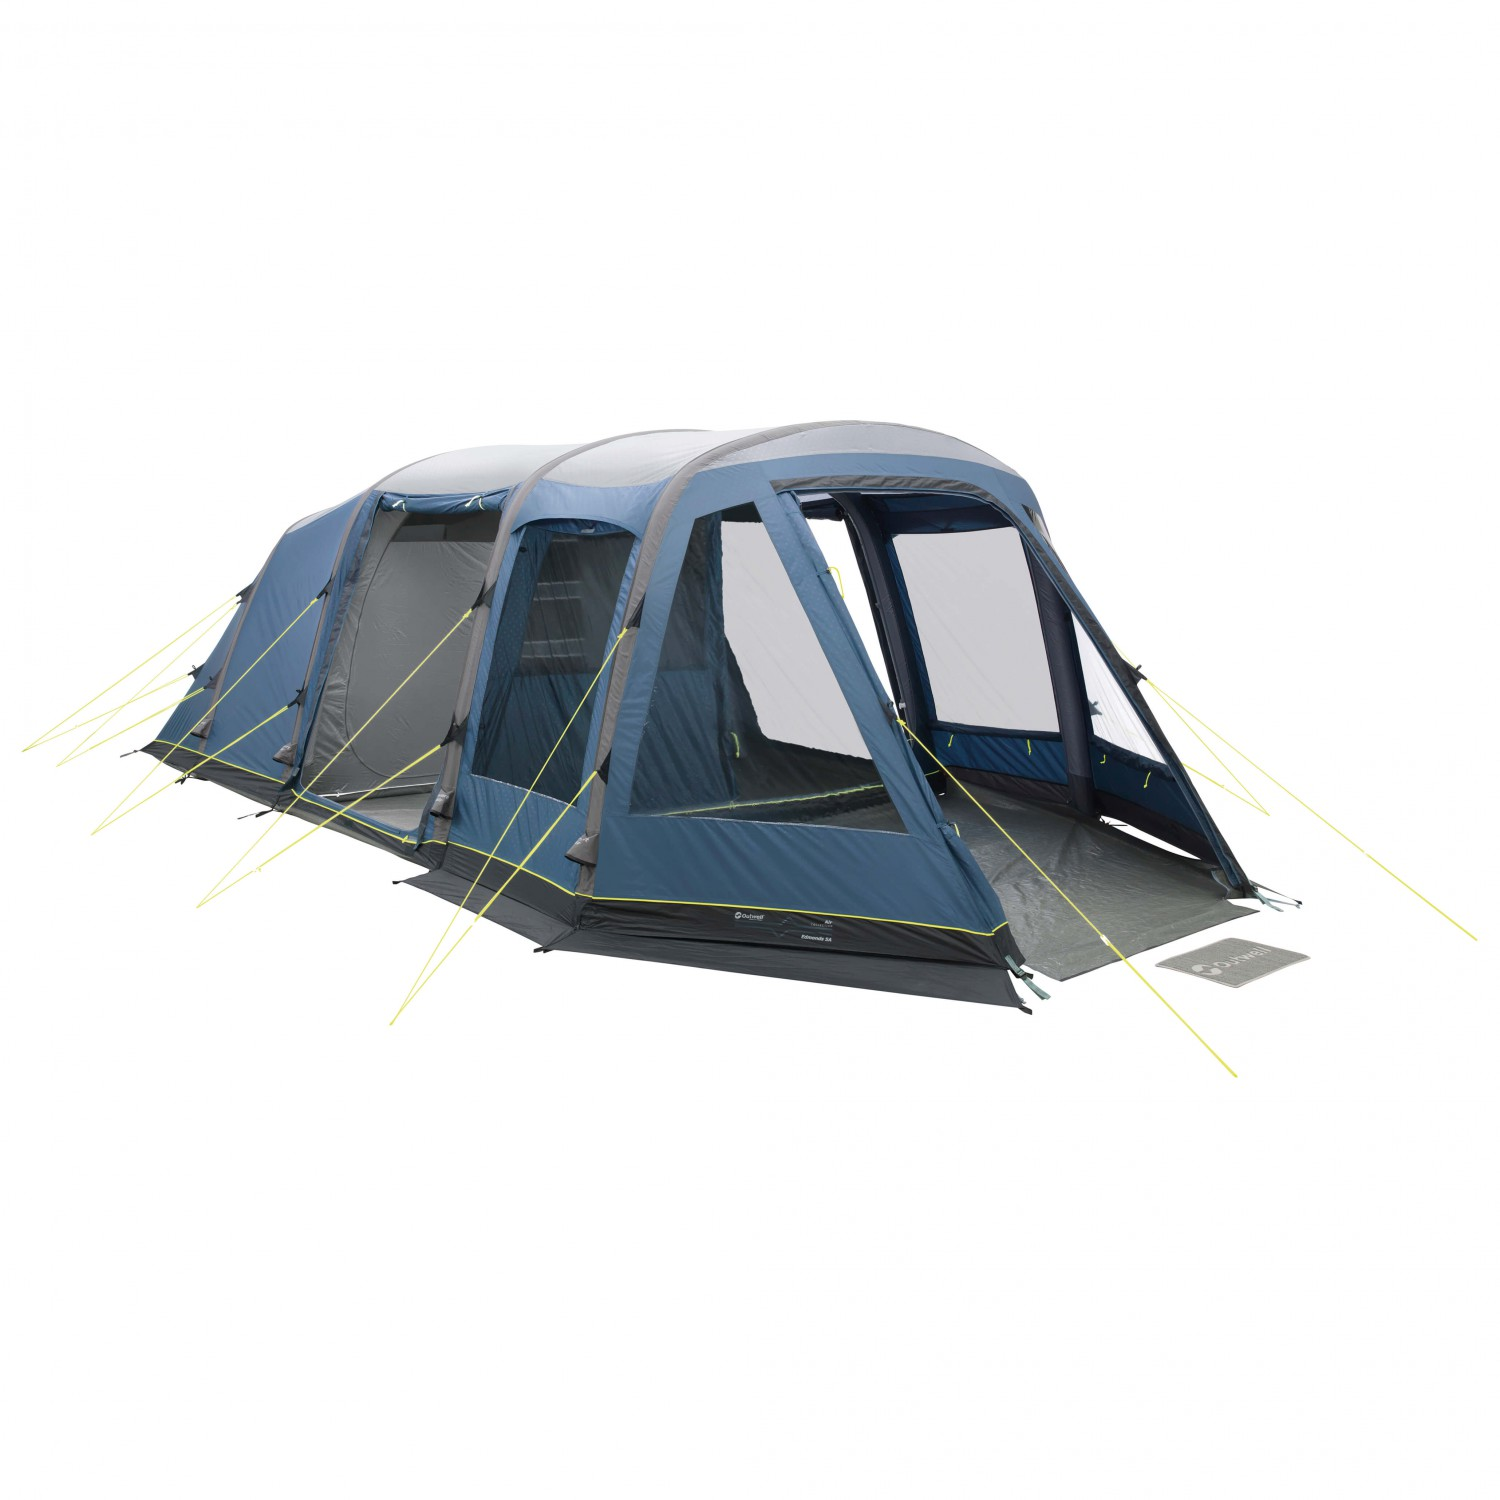 Outwell - Edmonds 5A - 4-8 man tent ...  sc 1 st  Alpinetrek & Outwell Edmonds 5A - 4-8 Man Tent | Free UK Delivery | Alpinetrek ...